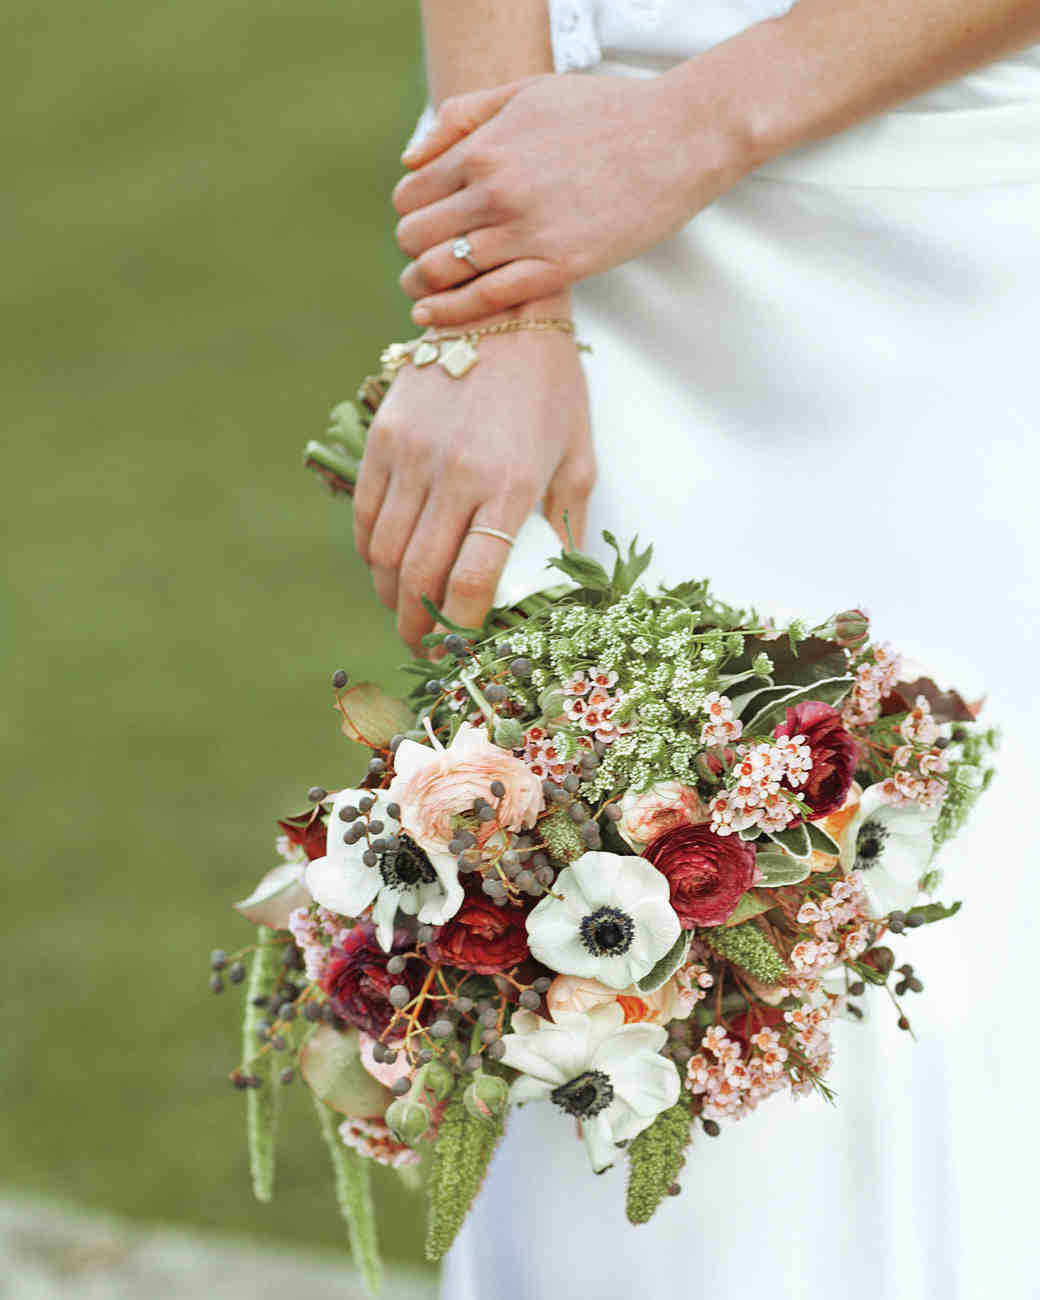 rw-heather-neal-bouquet-ms107641.jpg